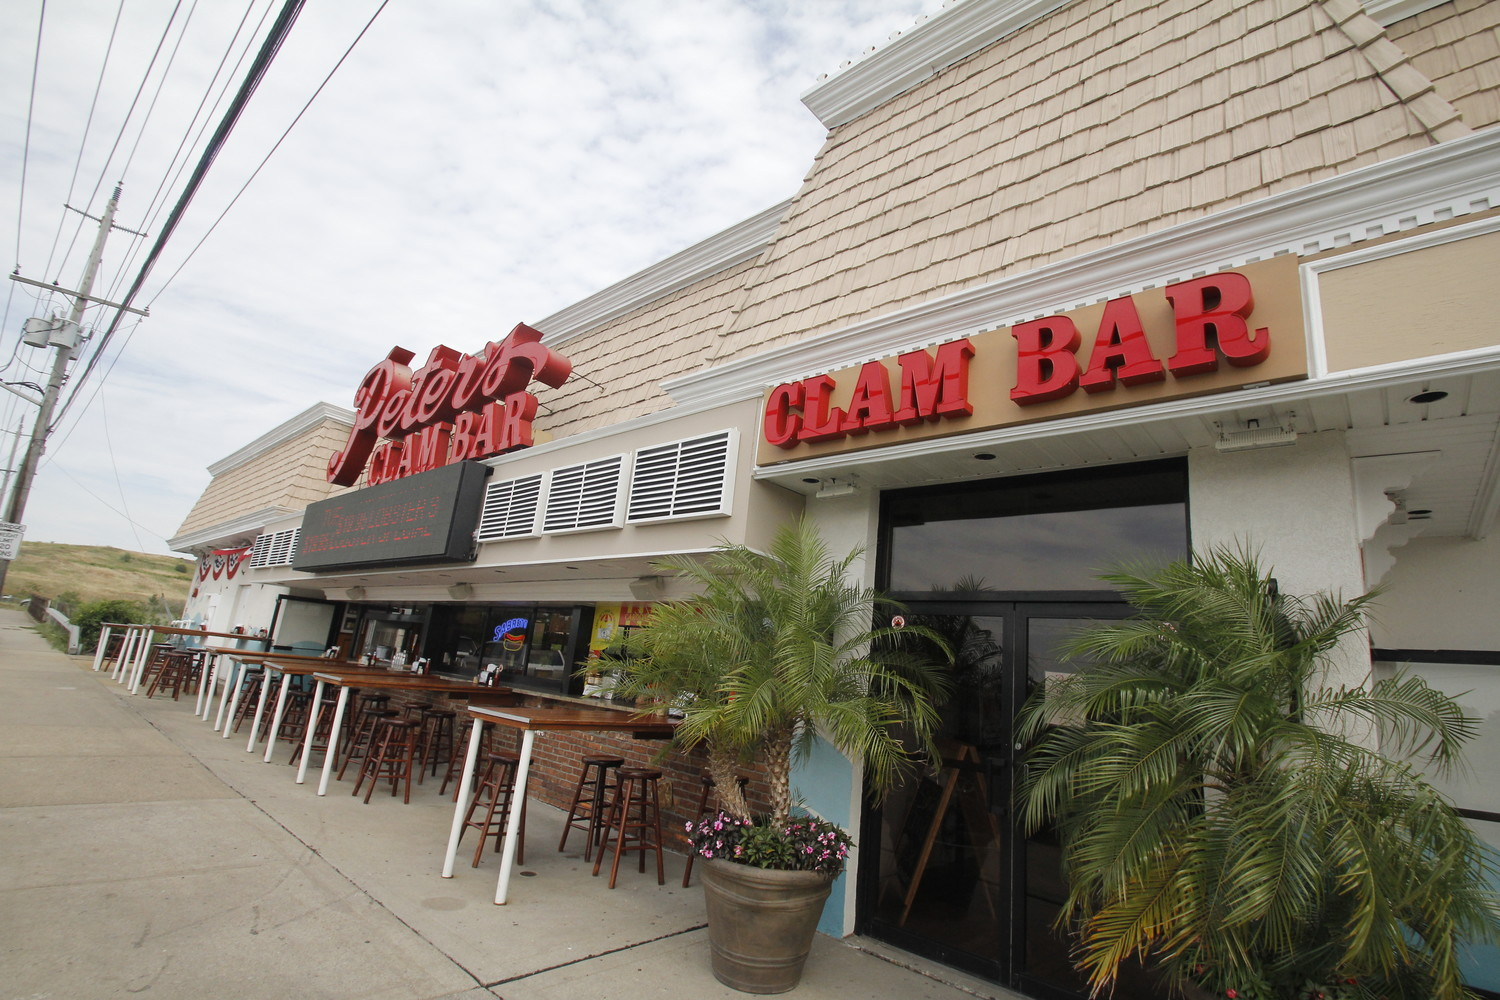 Peter's Clam Bar was ranked number one in the News 12 Long Island 2018 Food Fight contest.